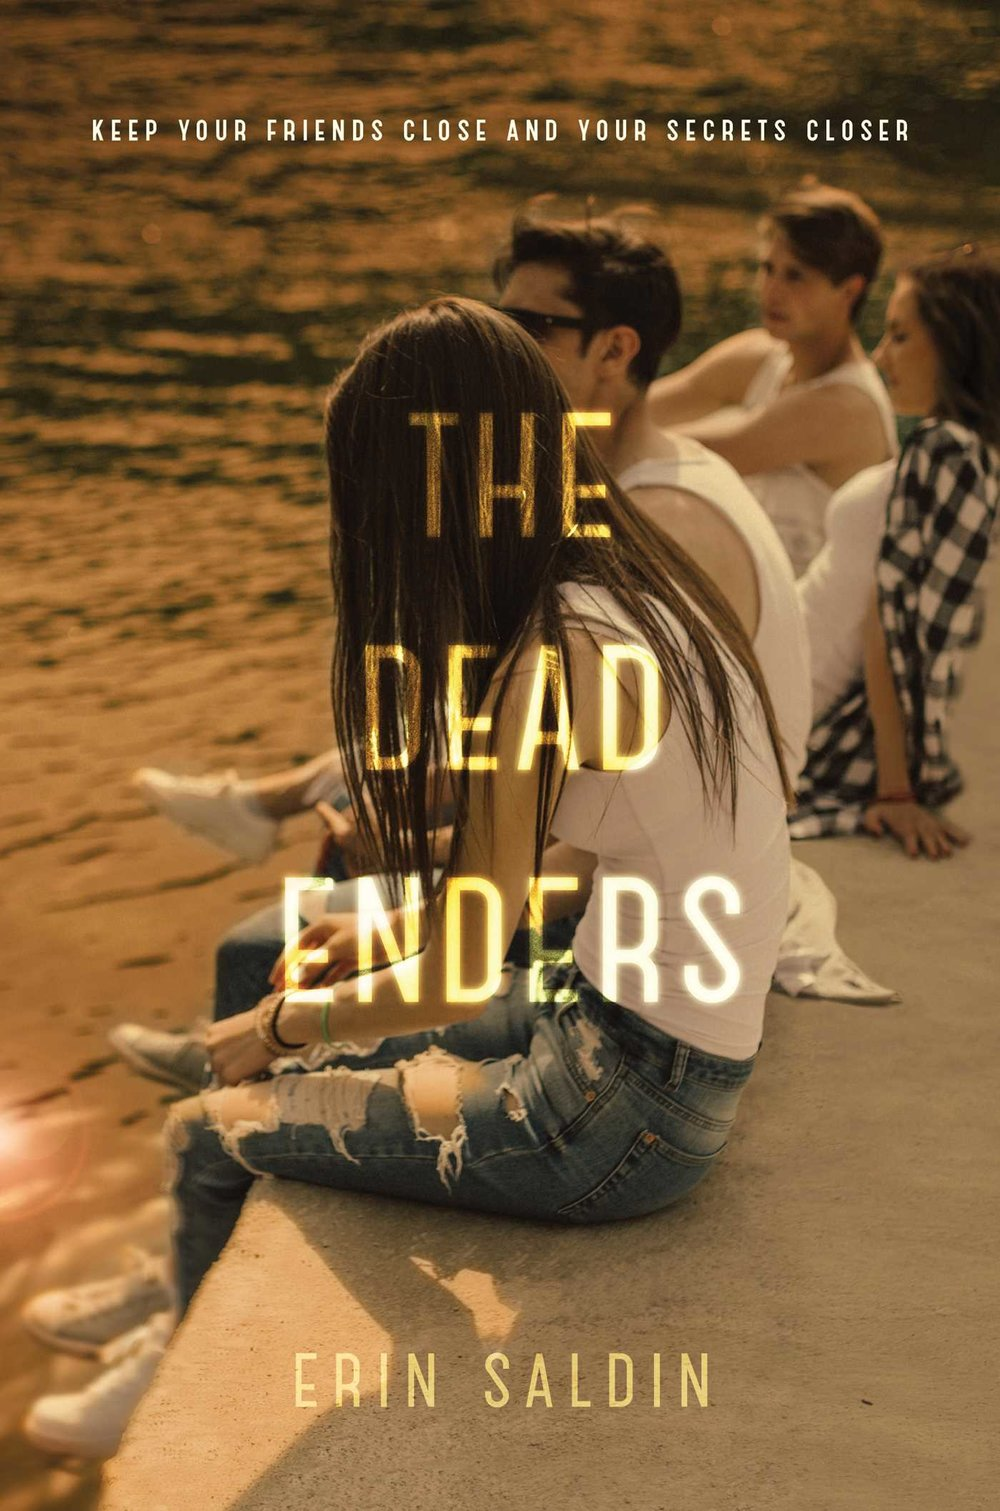 the-dead-enders-9781481490337_hr (1).jpg